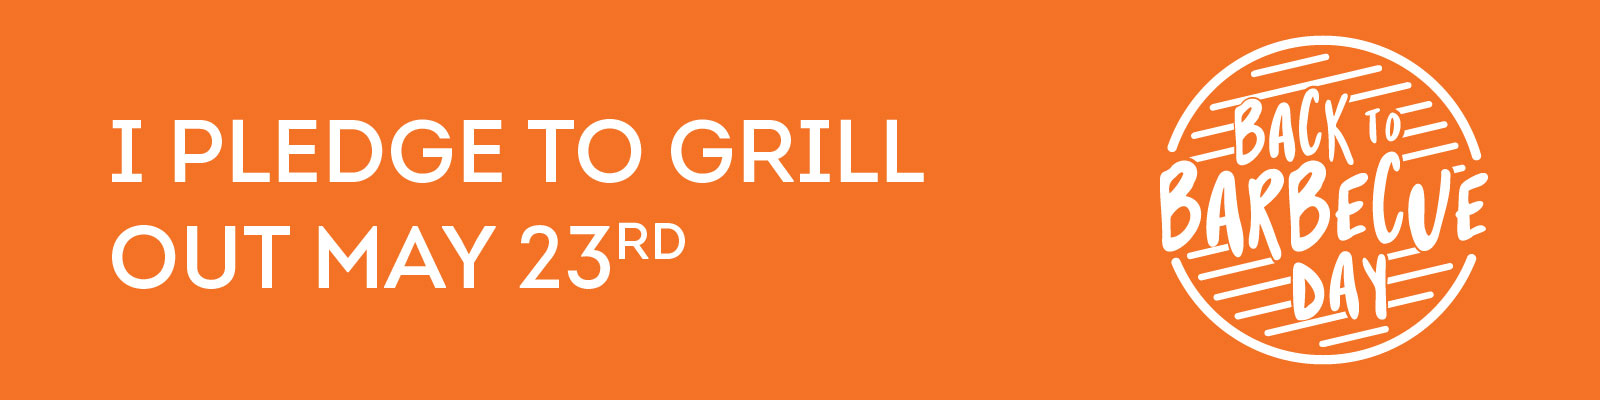 Pledge to Grill on Back to Barbecue Day